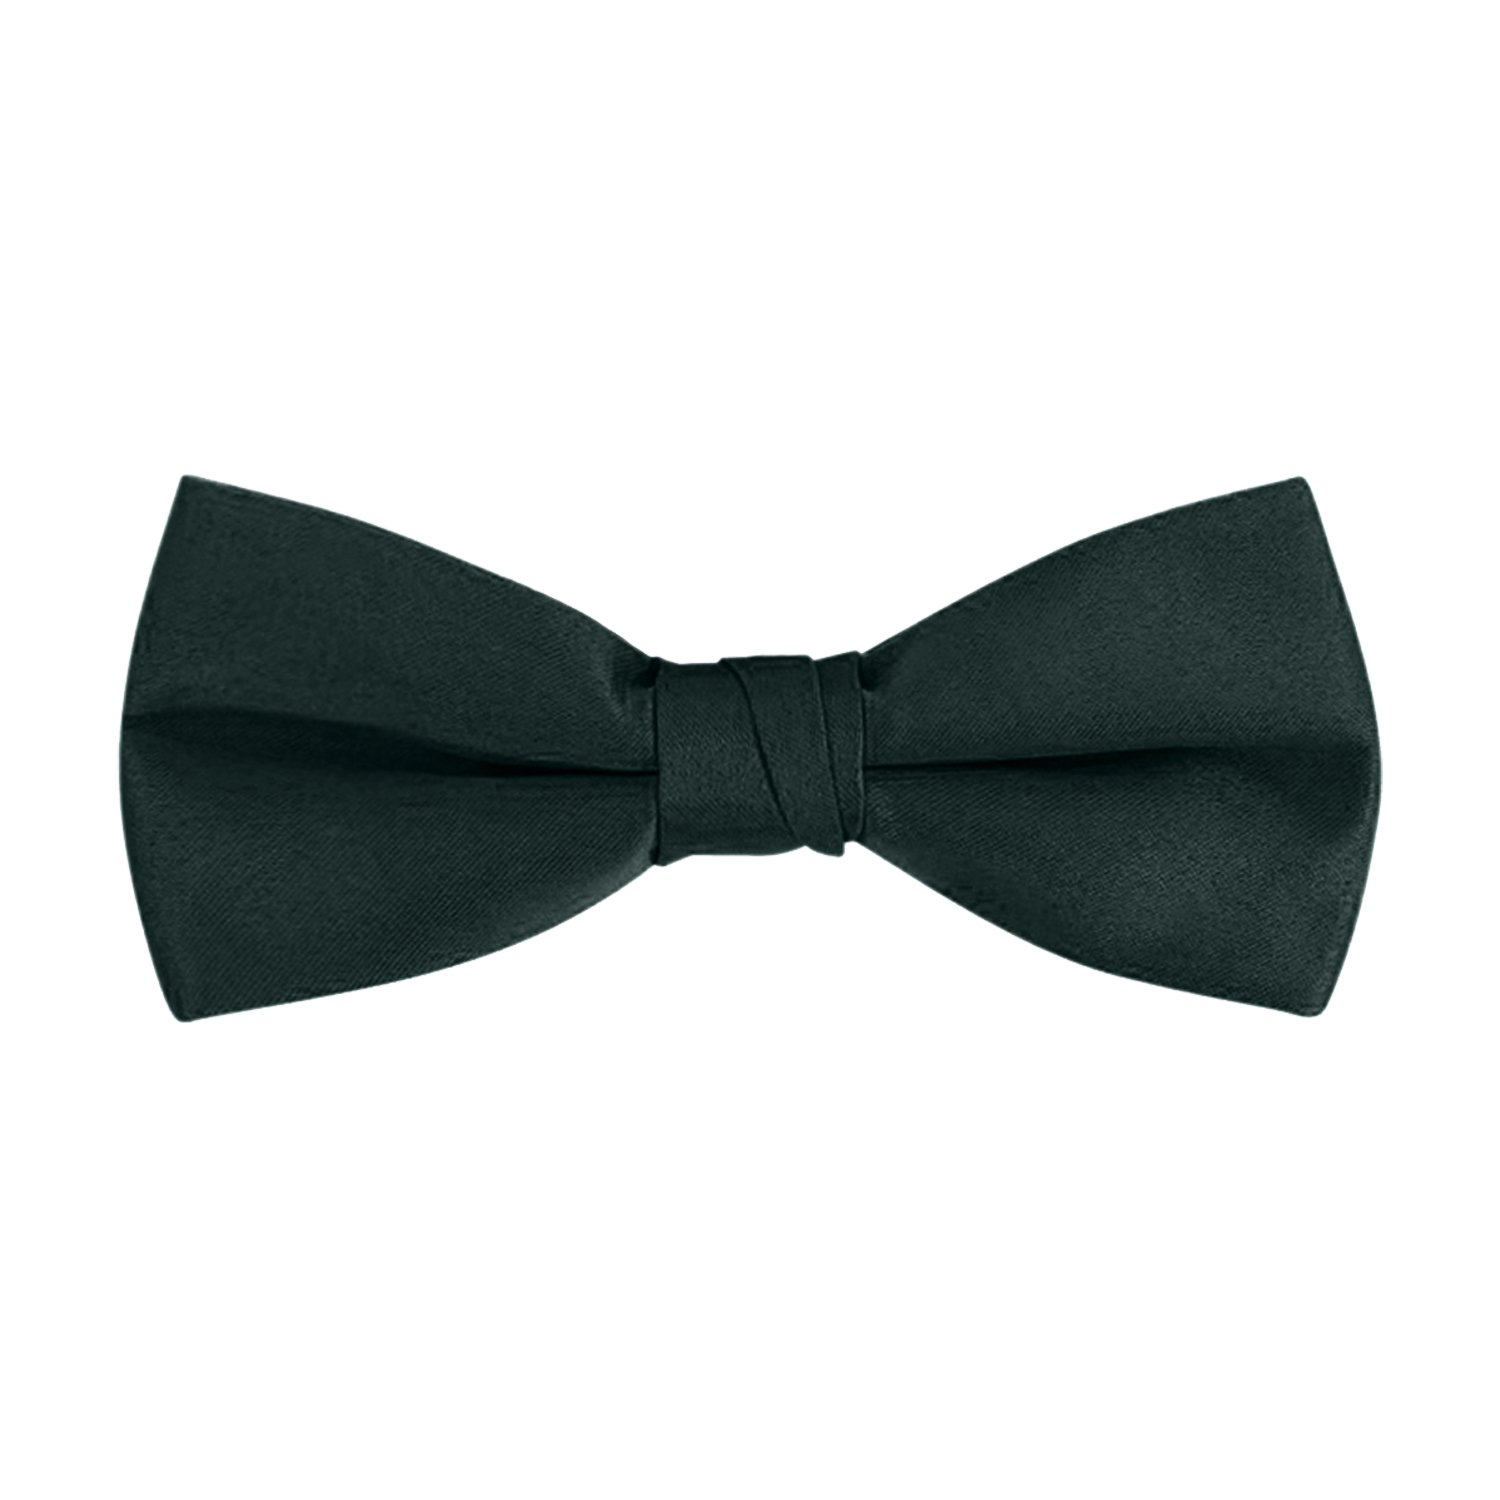 Men's Classic Pre-Tied Formal Tuxedo Bow Tie - Many Colors Available By S.H. Churchill 105T-01